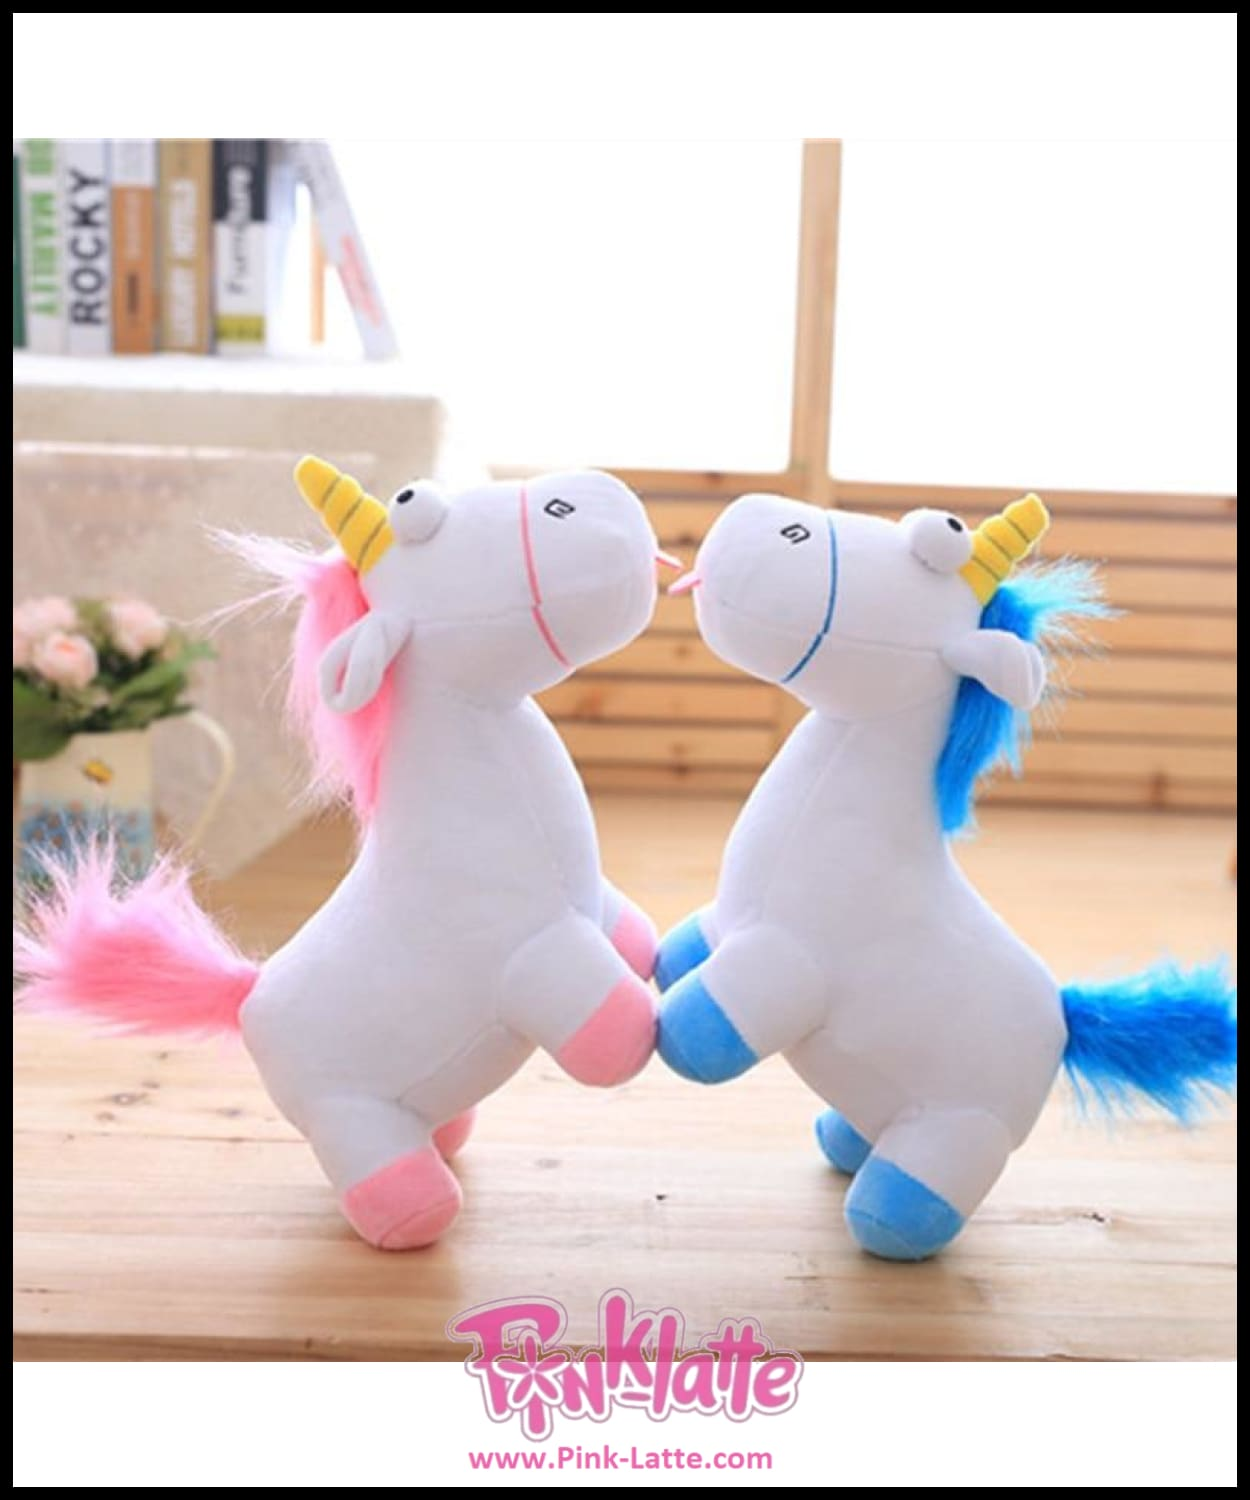 d6125e8725c Cute unicorn plush toys stuffed animal horse doll christmas present cartoon  kids baby toy jpg 1250x1500